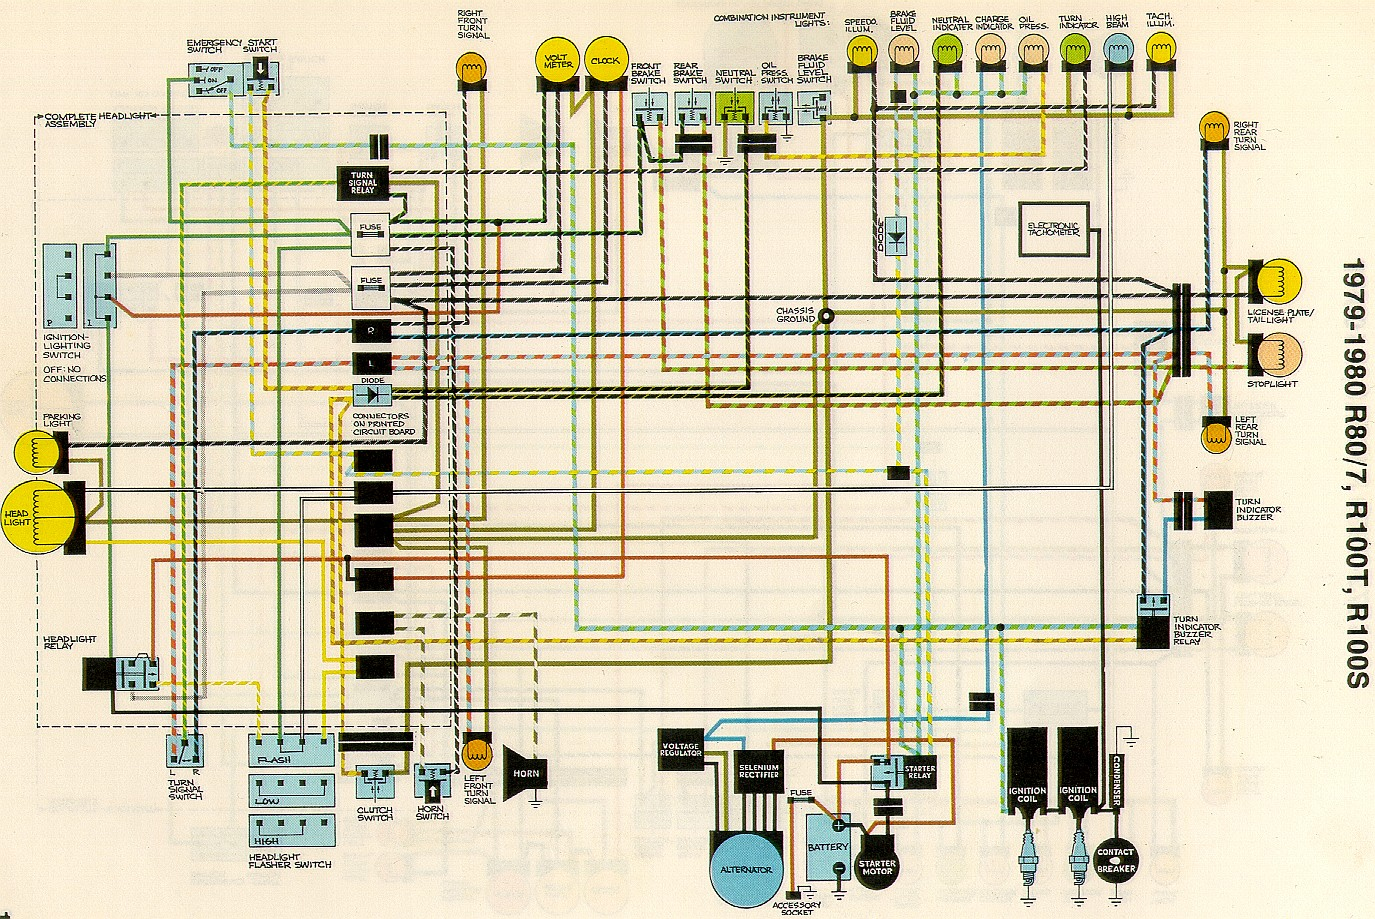 79 wiring diagram online ireleast readingrat net bmw wiring diagrams online at mr168.co